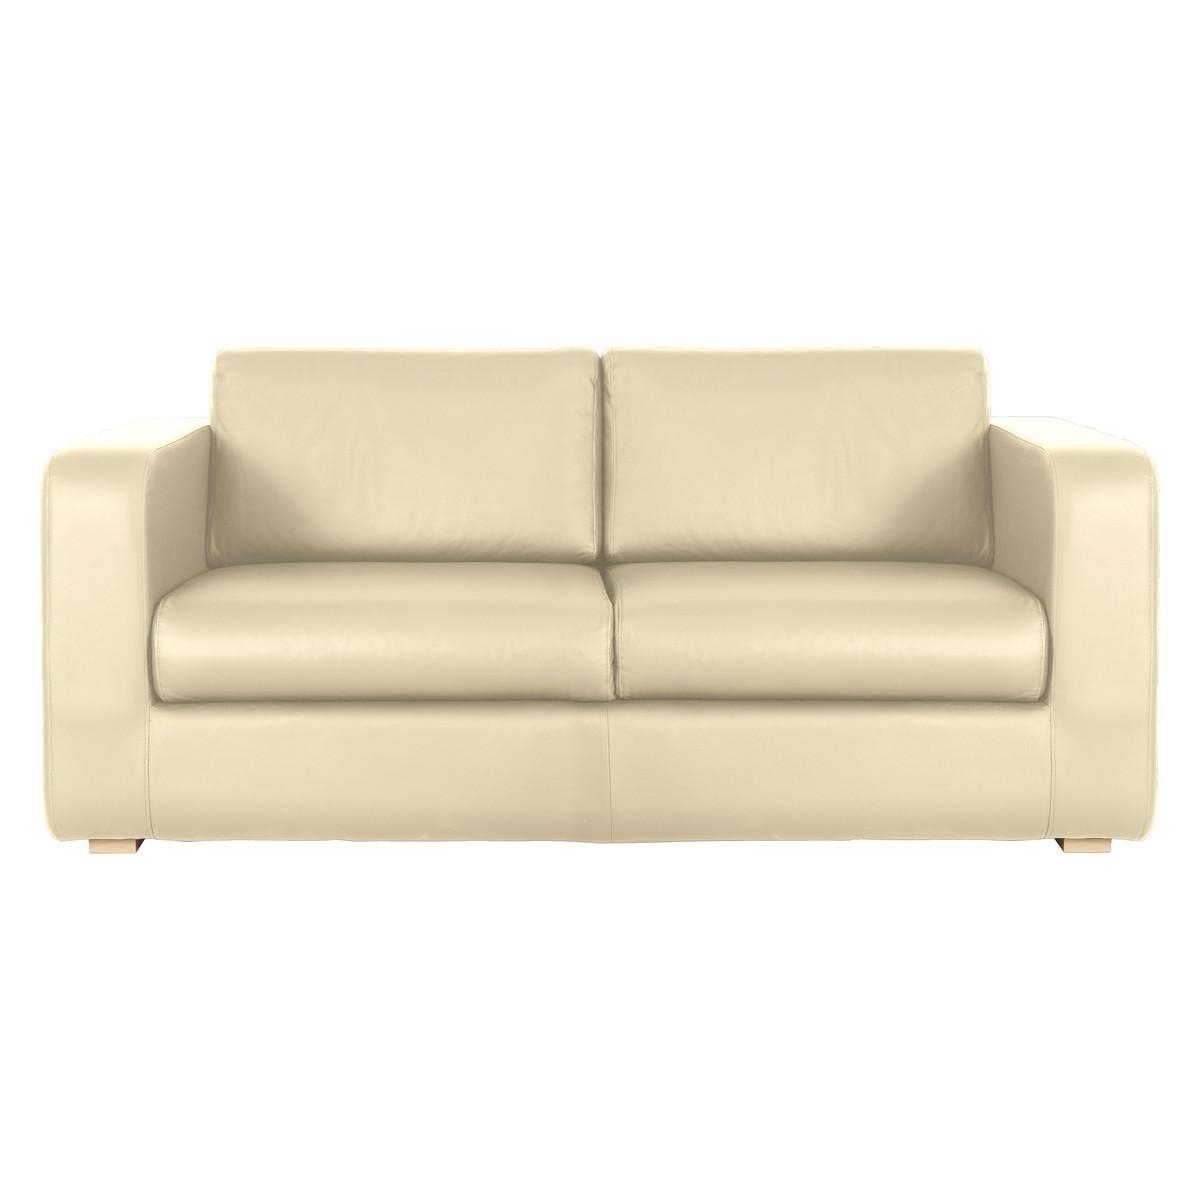 Porto Cream Leather 3 Seater Sofa | Buy Now At Habitat Uk Intended For Three Seater Sofas (Image 17 of 20)